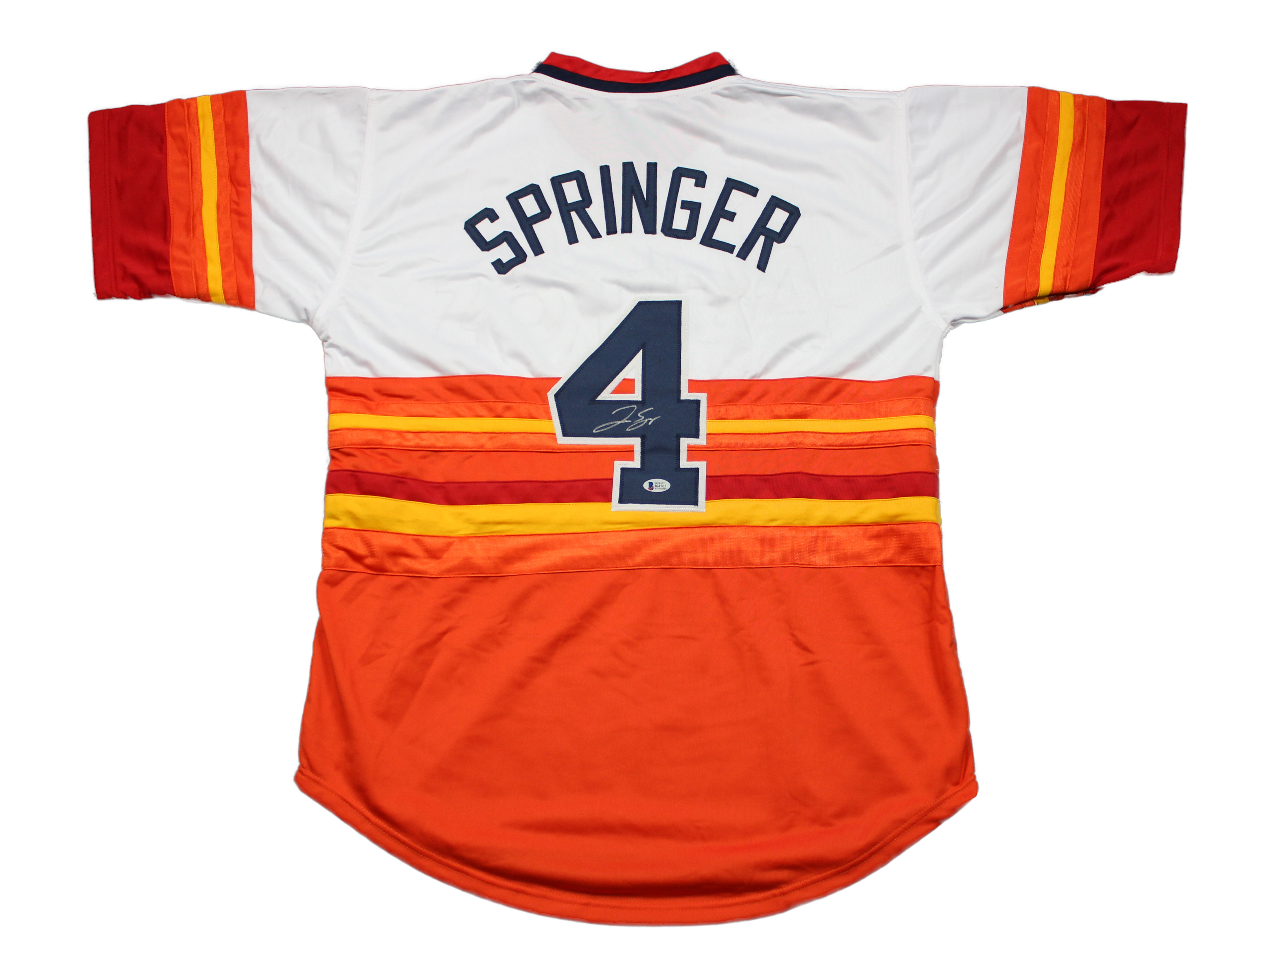 new style 3c11d 40bf2 George Springer Autographed Custom Rainbow Jersey